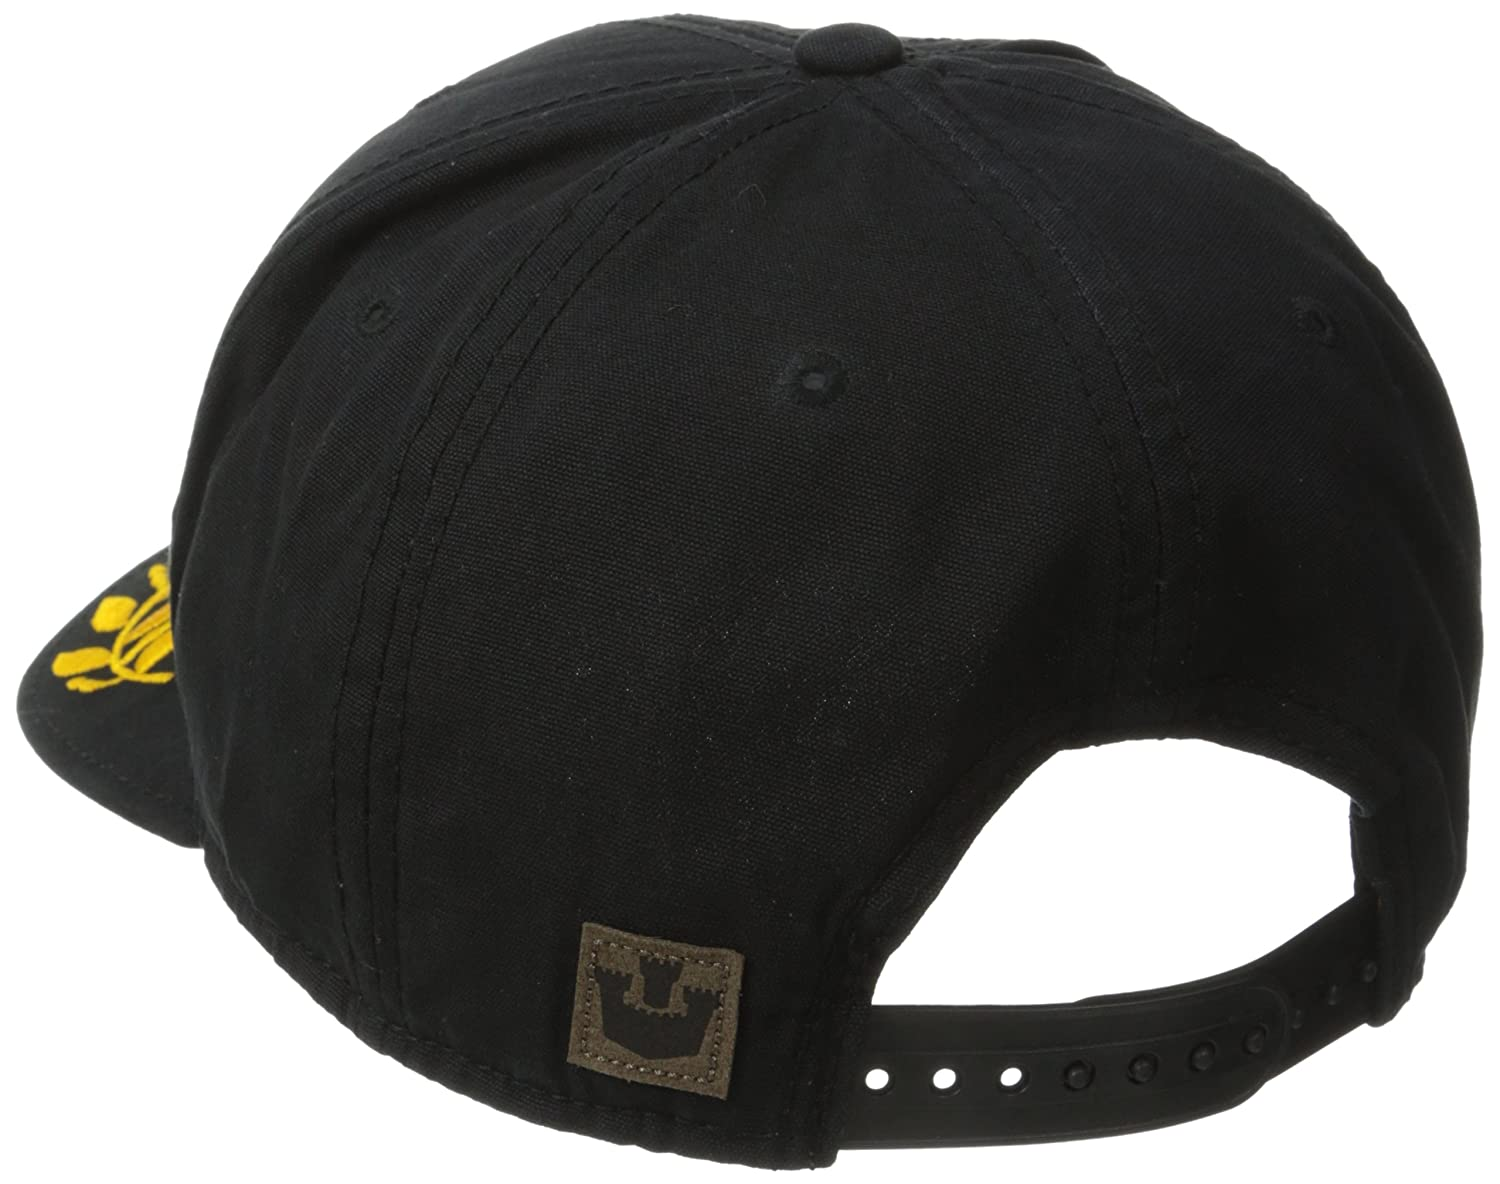 Amazon.com: Goorin Bros. Mens City Baseball Cap, Black One Size: Clothing